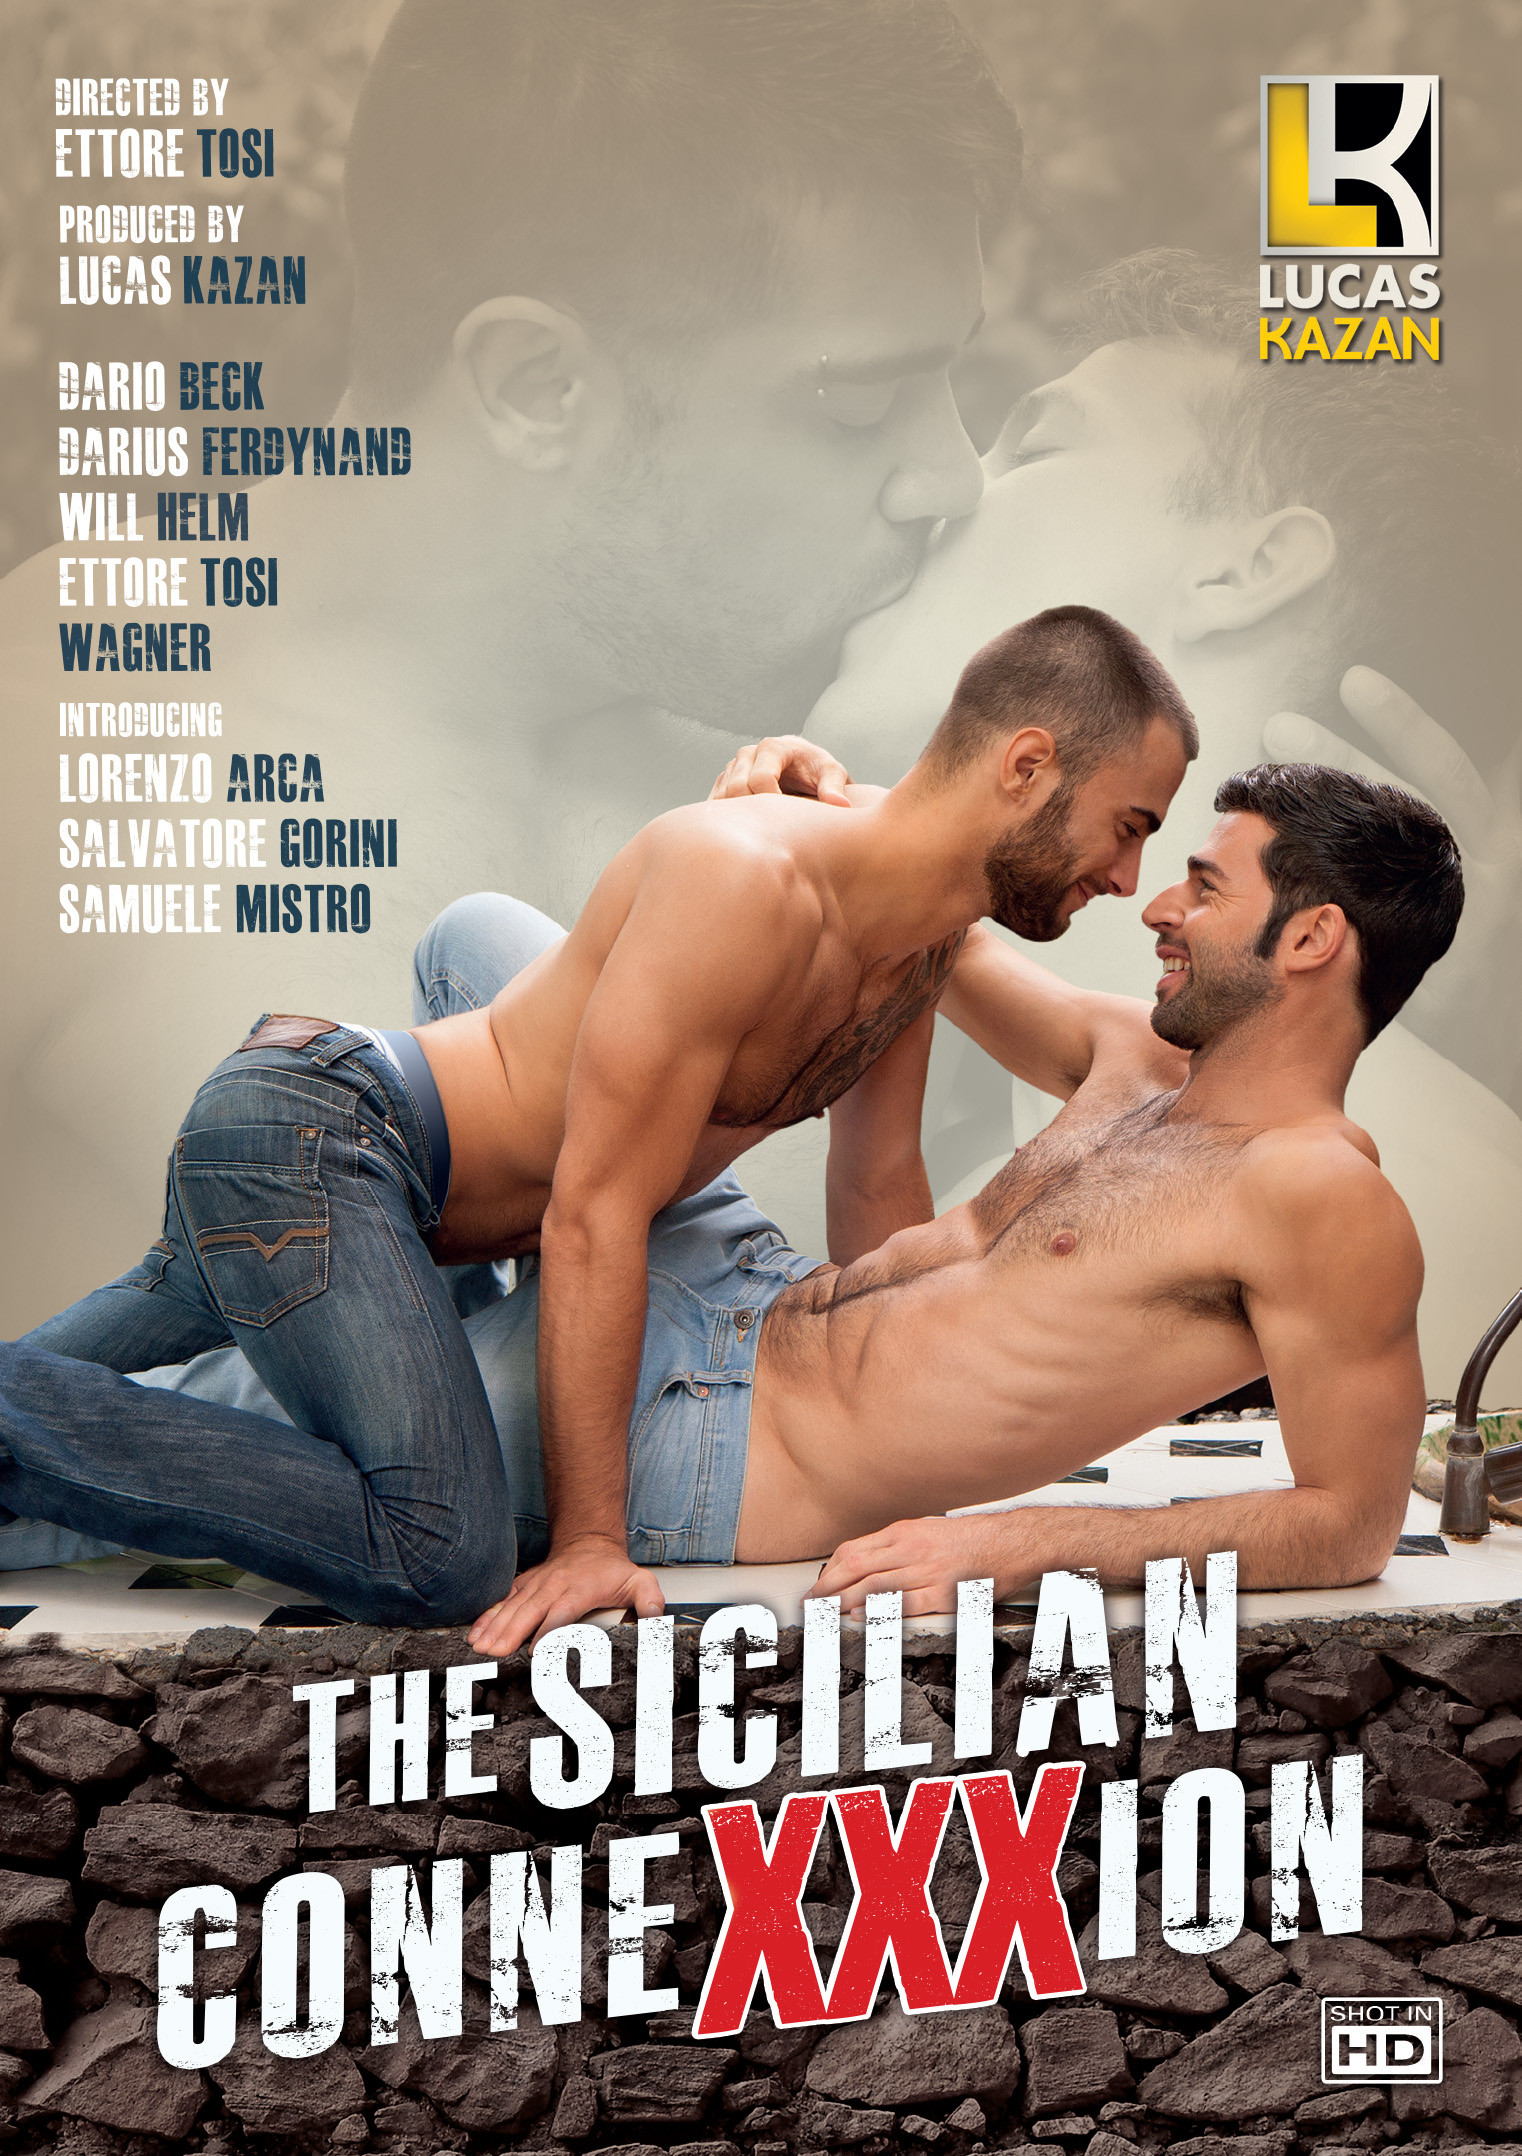 Nude movies of gay couples doing sex in 8